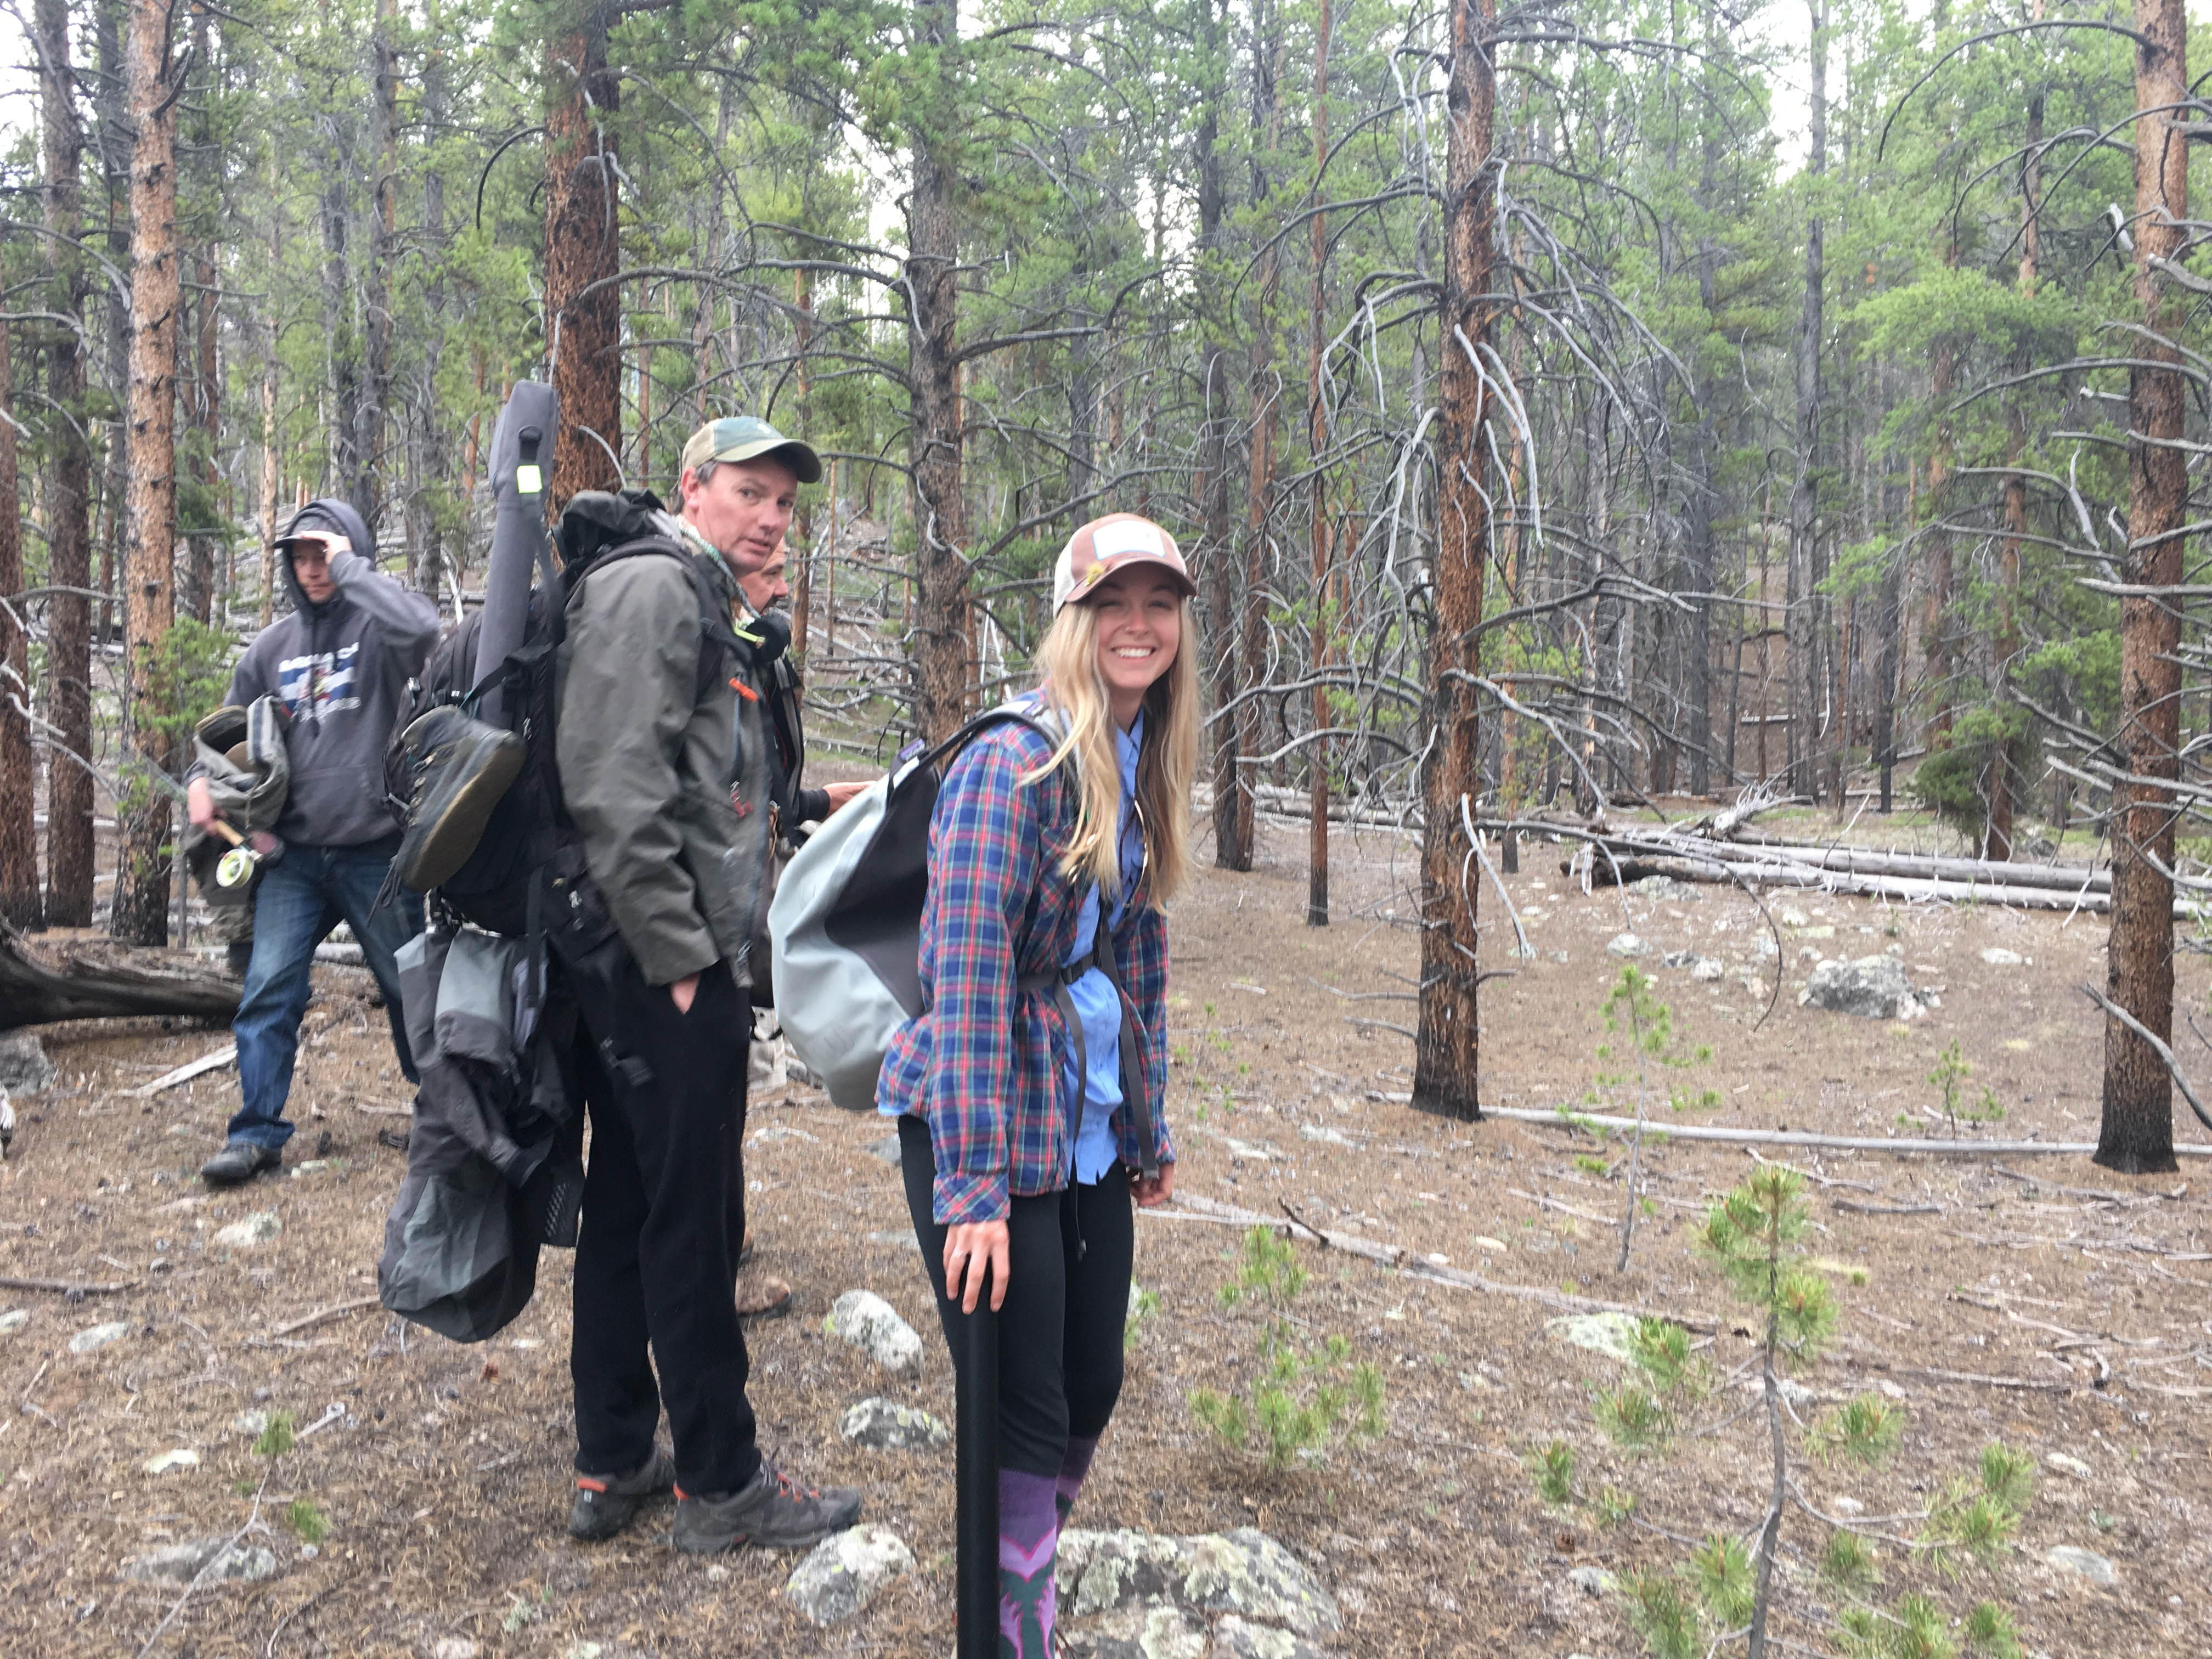 A group hiking through the woods to go fly fishing